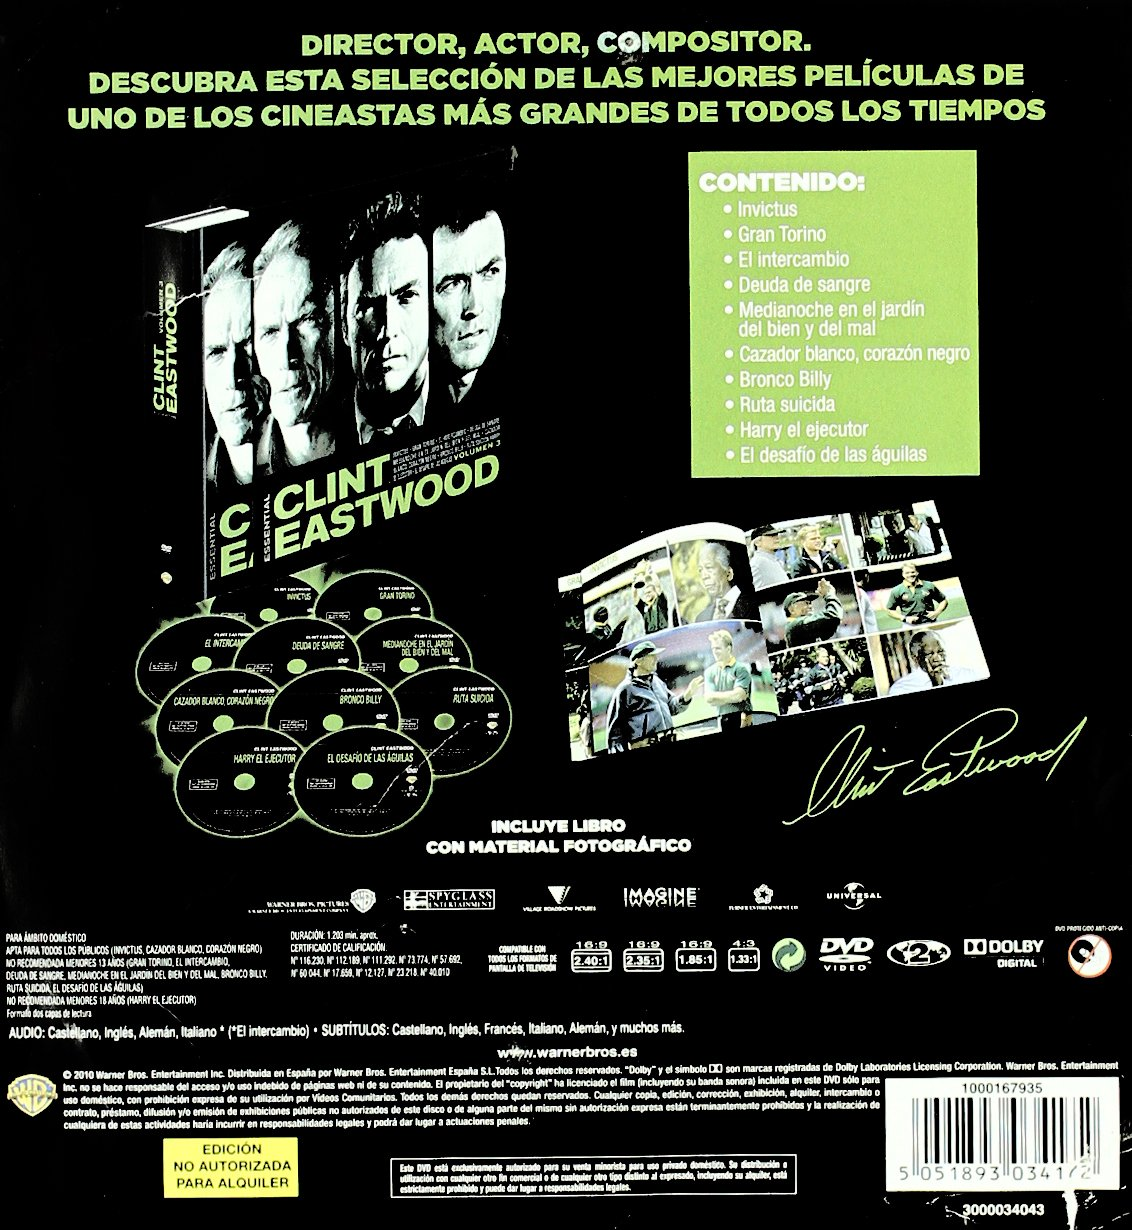 Clint Eastwood Essential Vol. 3 [DVD]: Amazon.es: Clint Eastwood, Matt Damon, Christopher Carley, Angelina Jolie, Jeff Daniels, John Cusack, Clint Eastwood, James Far, Clint Eastwood, Matt Damon: Cine y Series TV